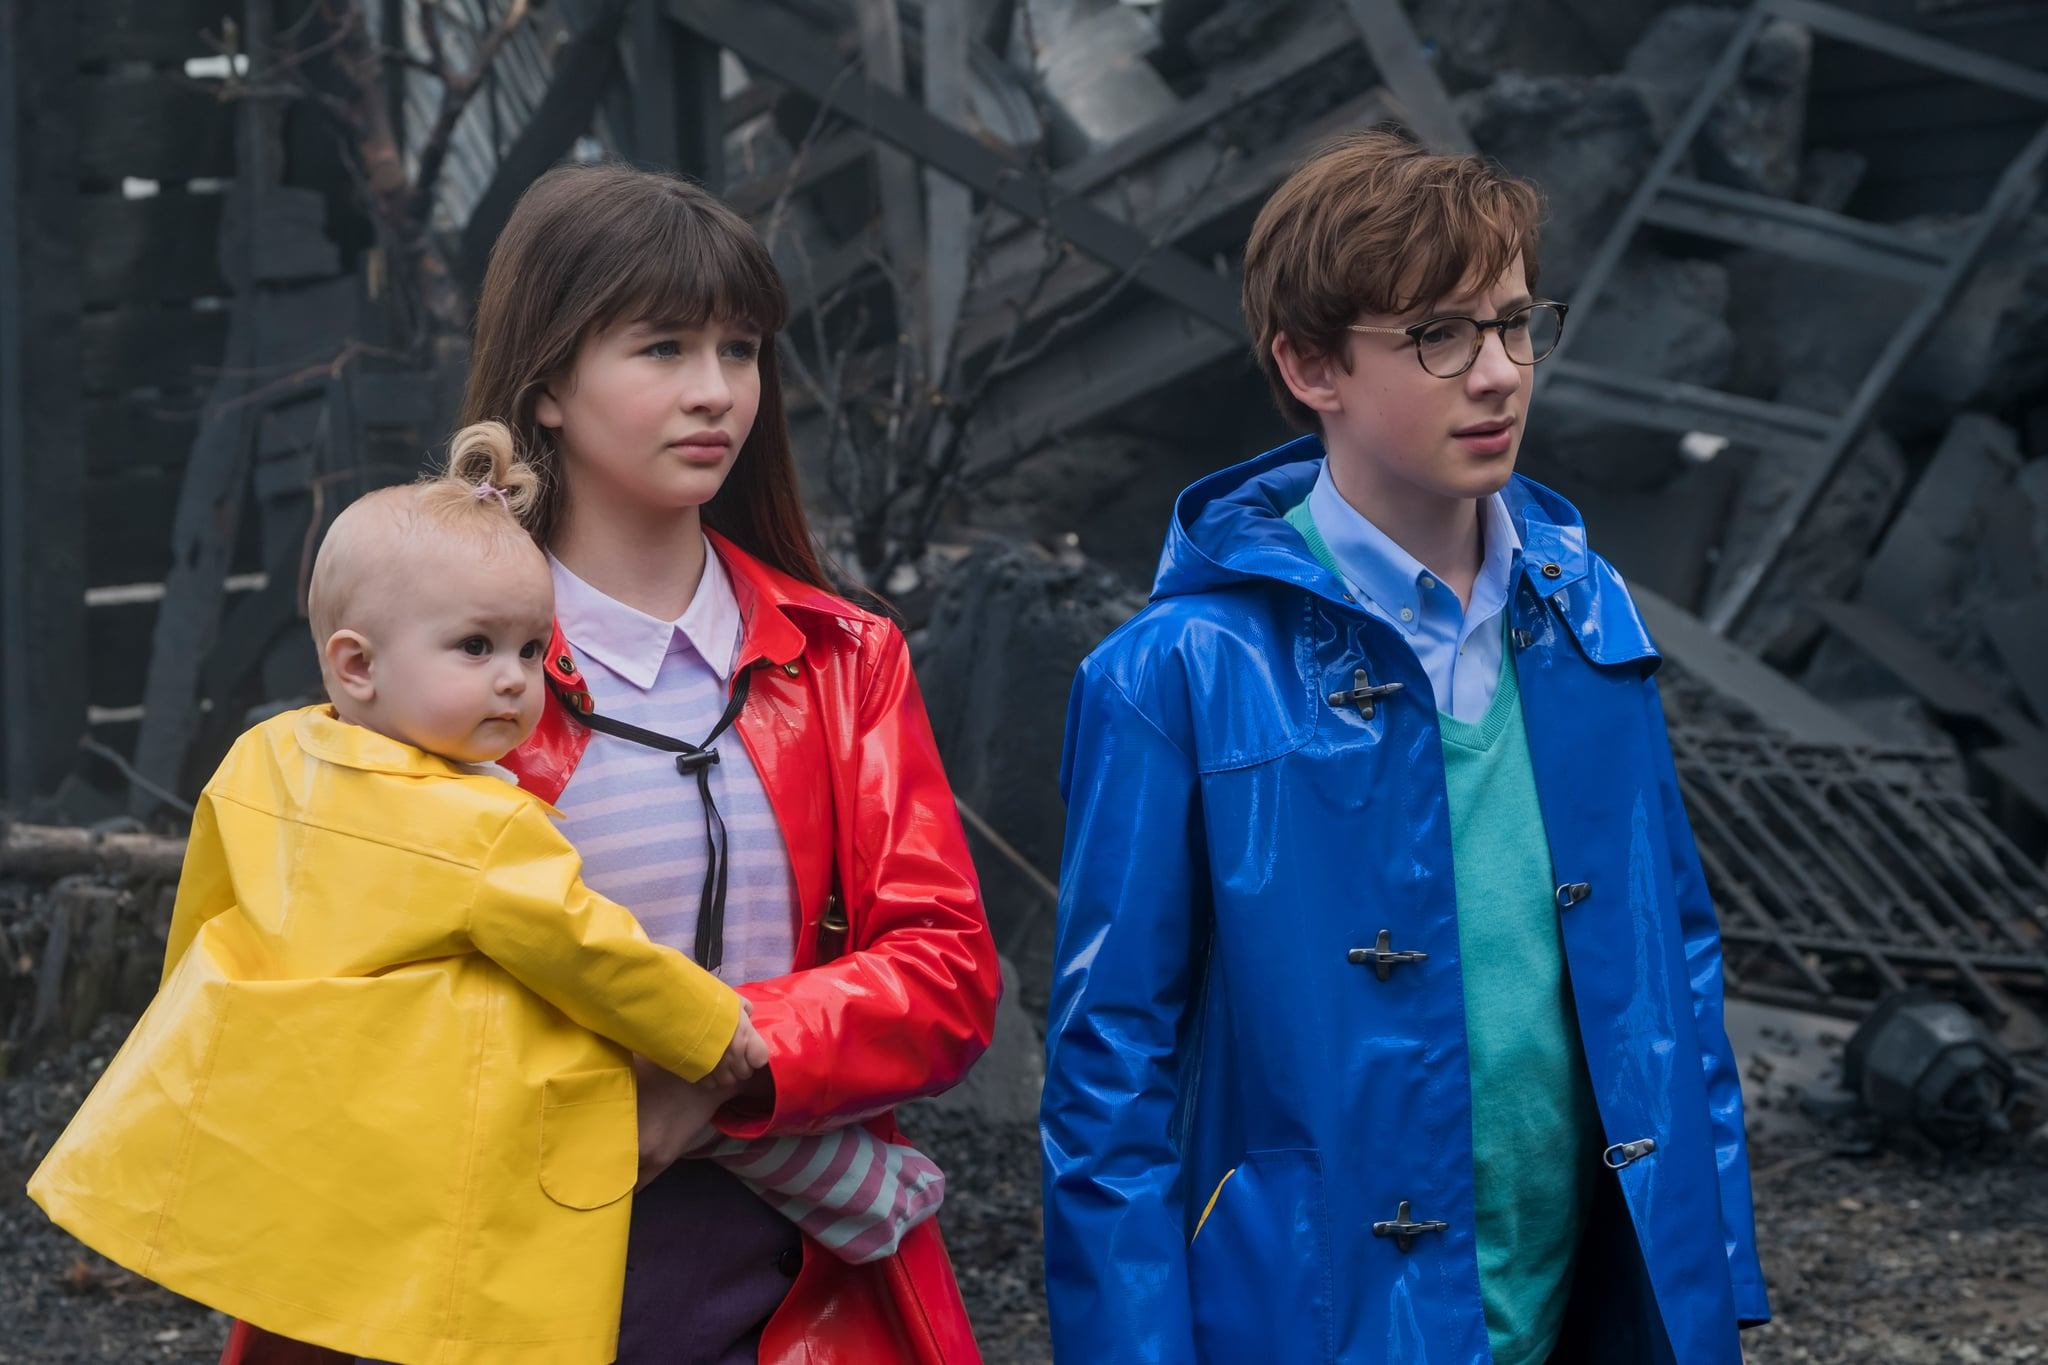 A SERIES OF UNFORTUNATE EVENTS, (from left): Malina Weissman, Louis Hynes, 'The Miserable Mill: Part One' (Season 1, ep. 107, aired January 13, 2017). photo: Joe Lederer / Netflix / courtesy Everett Collection